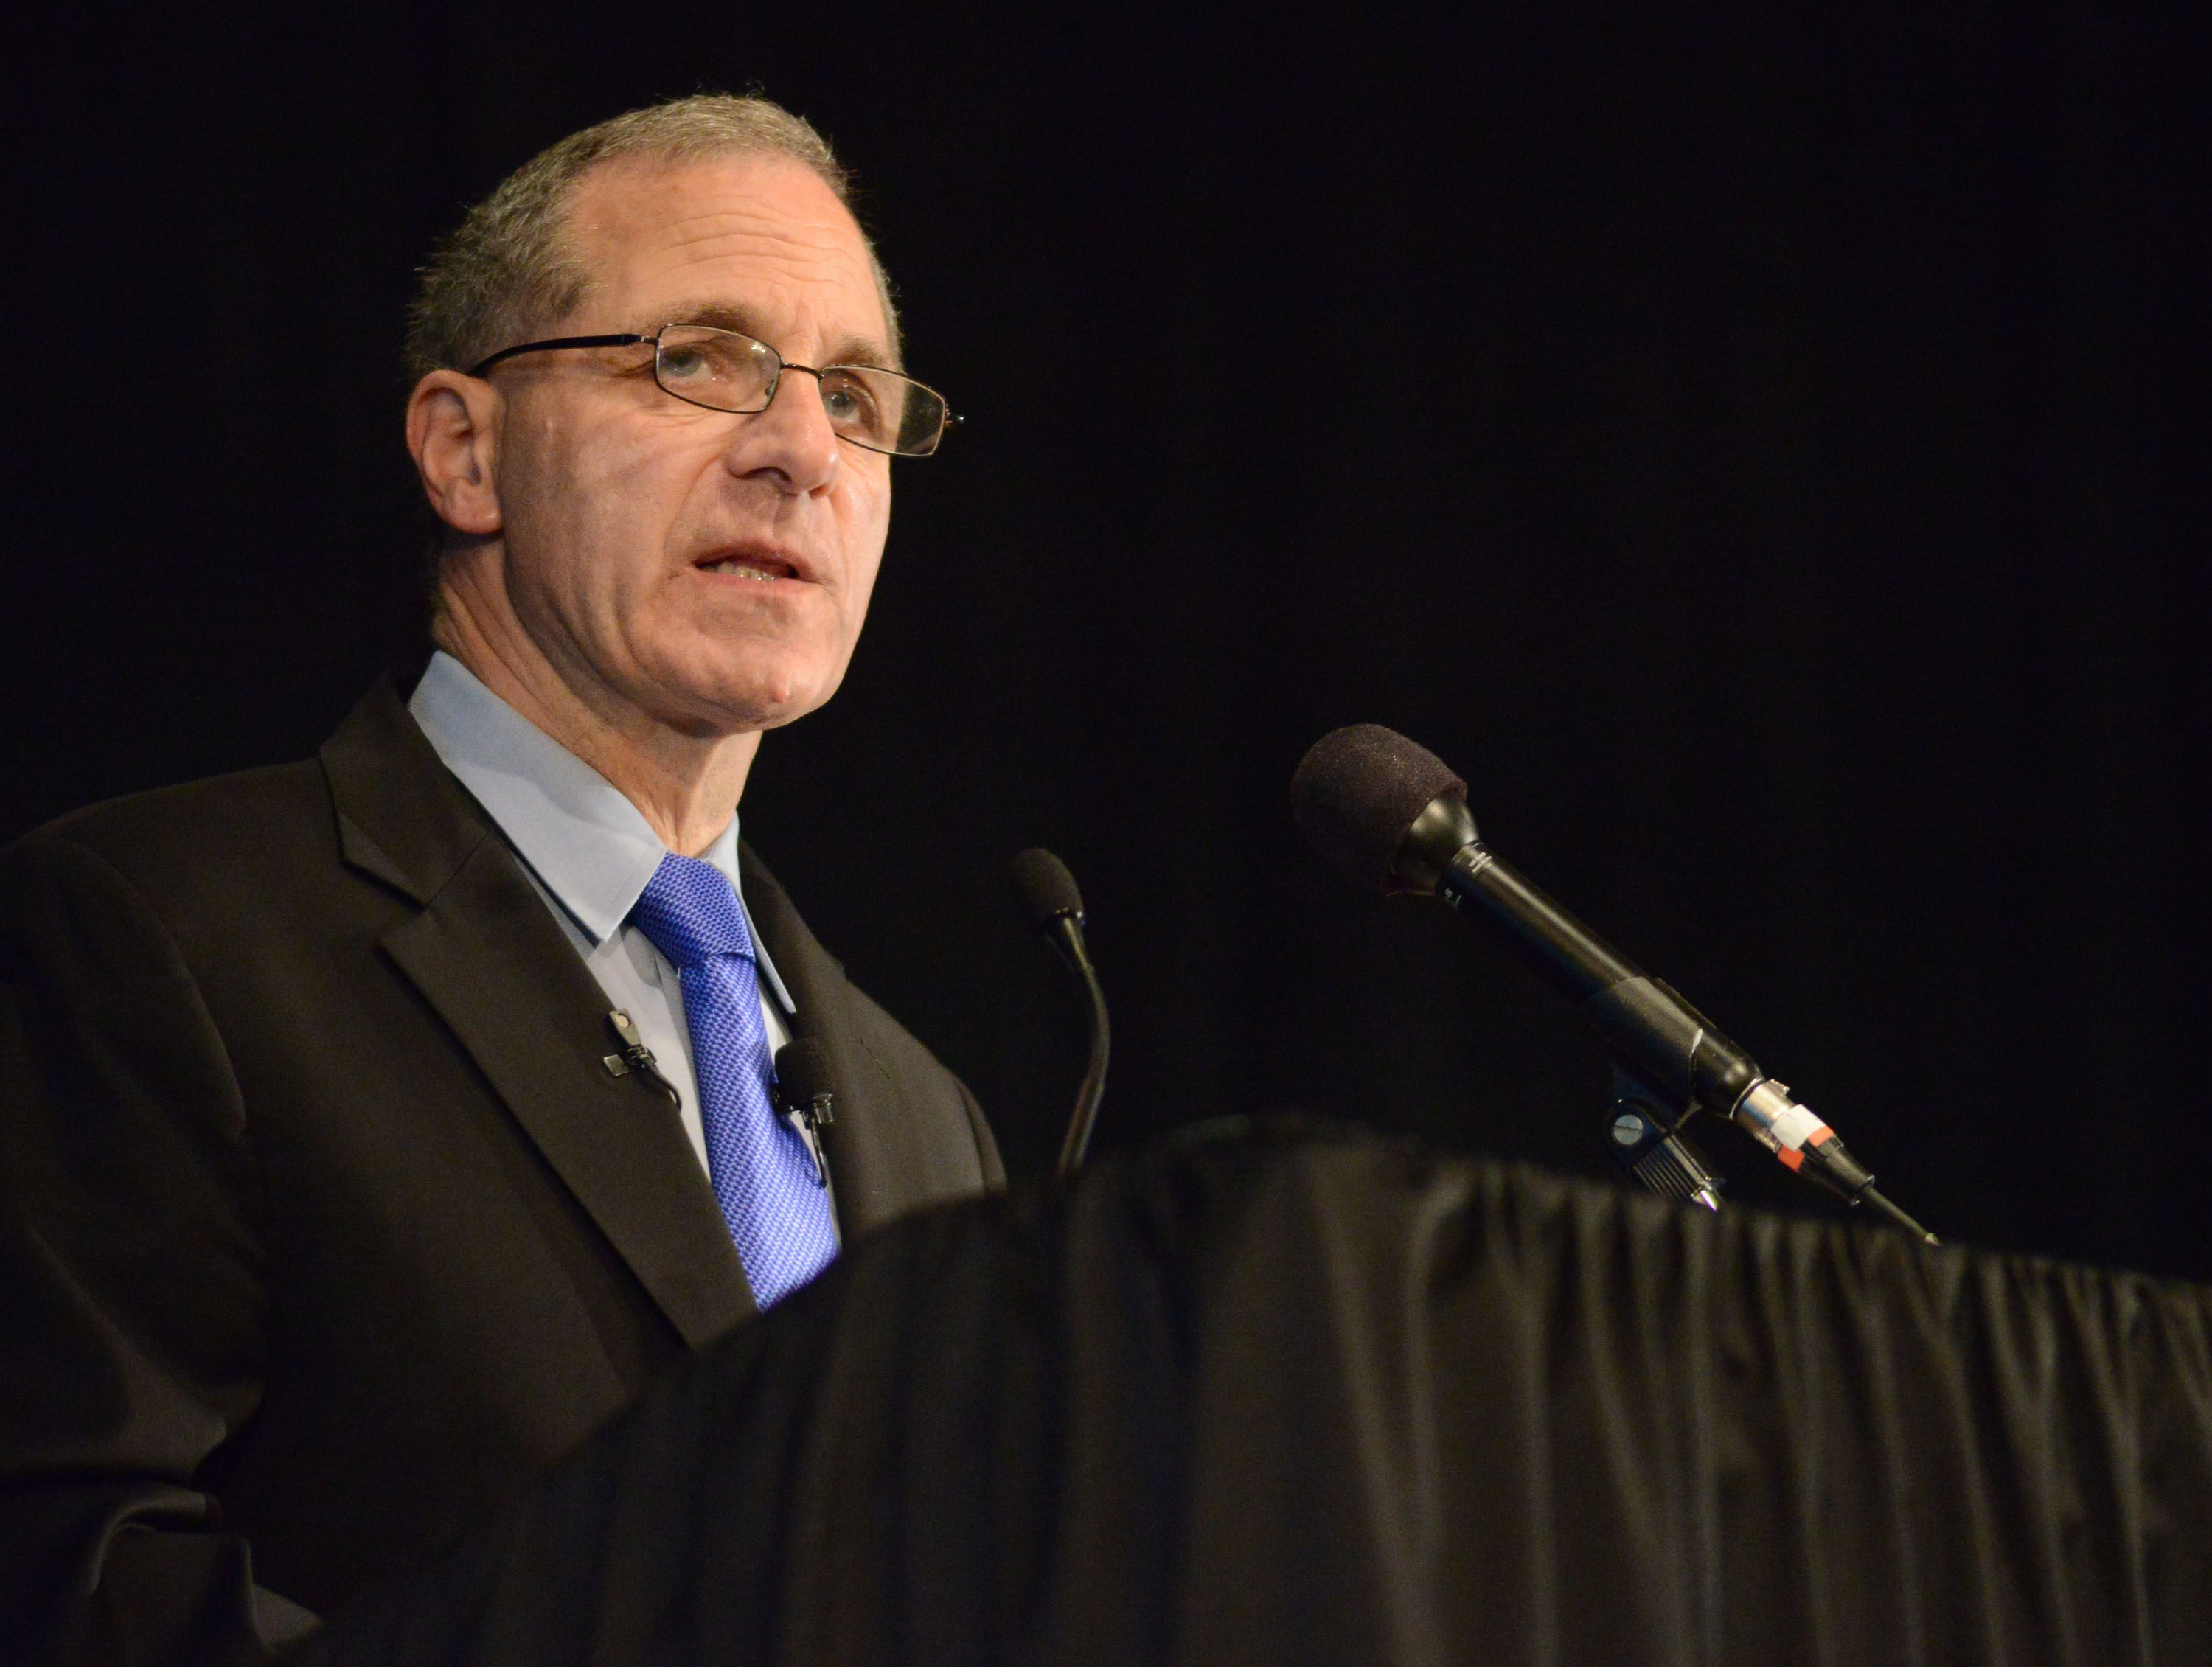 Louis Freeh speaks at an event.